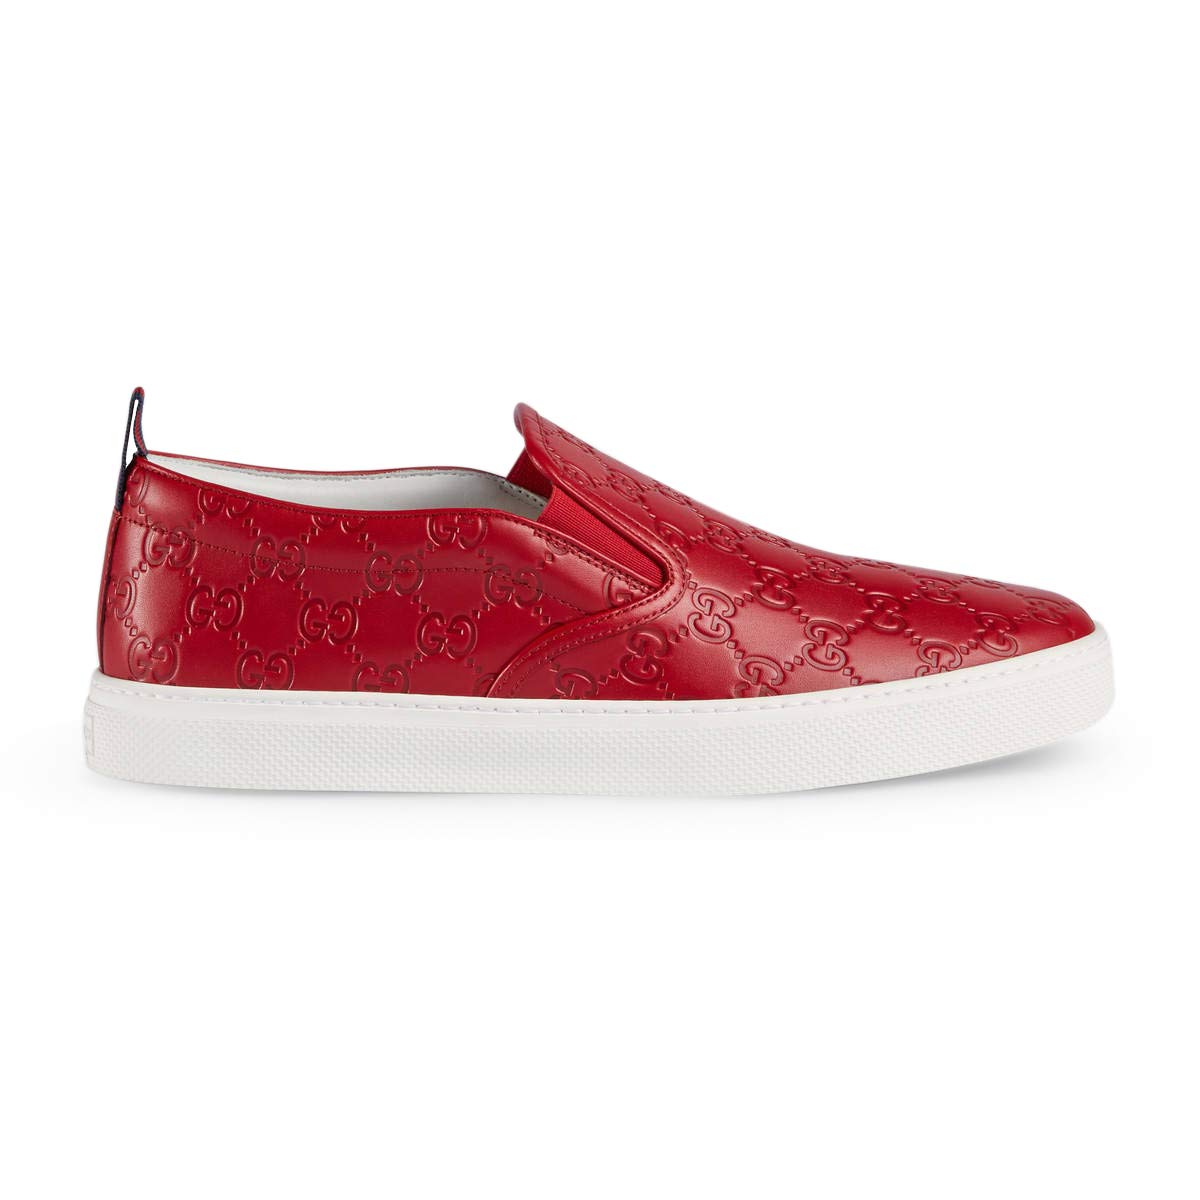 18dc598ba Amazon.com: Gucci Men's Dublin Signature Slip-On Sneaker, Red (12 US / 11.5  UK): Shoes